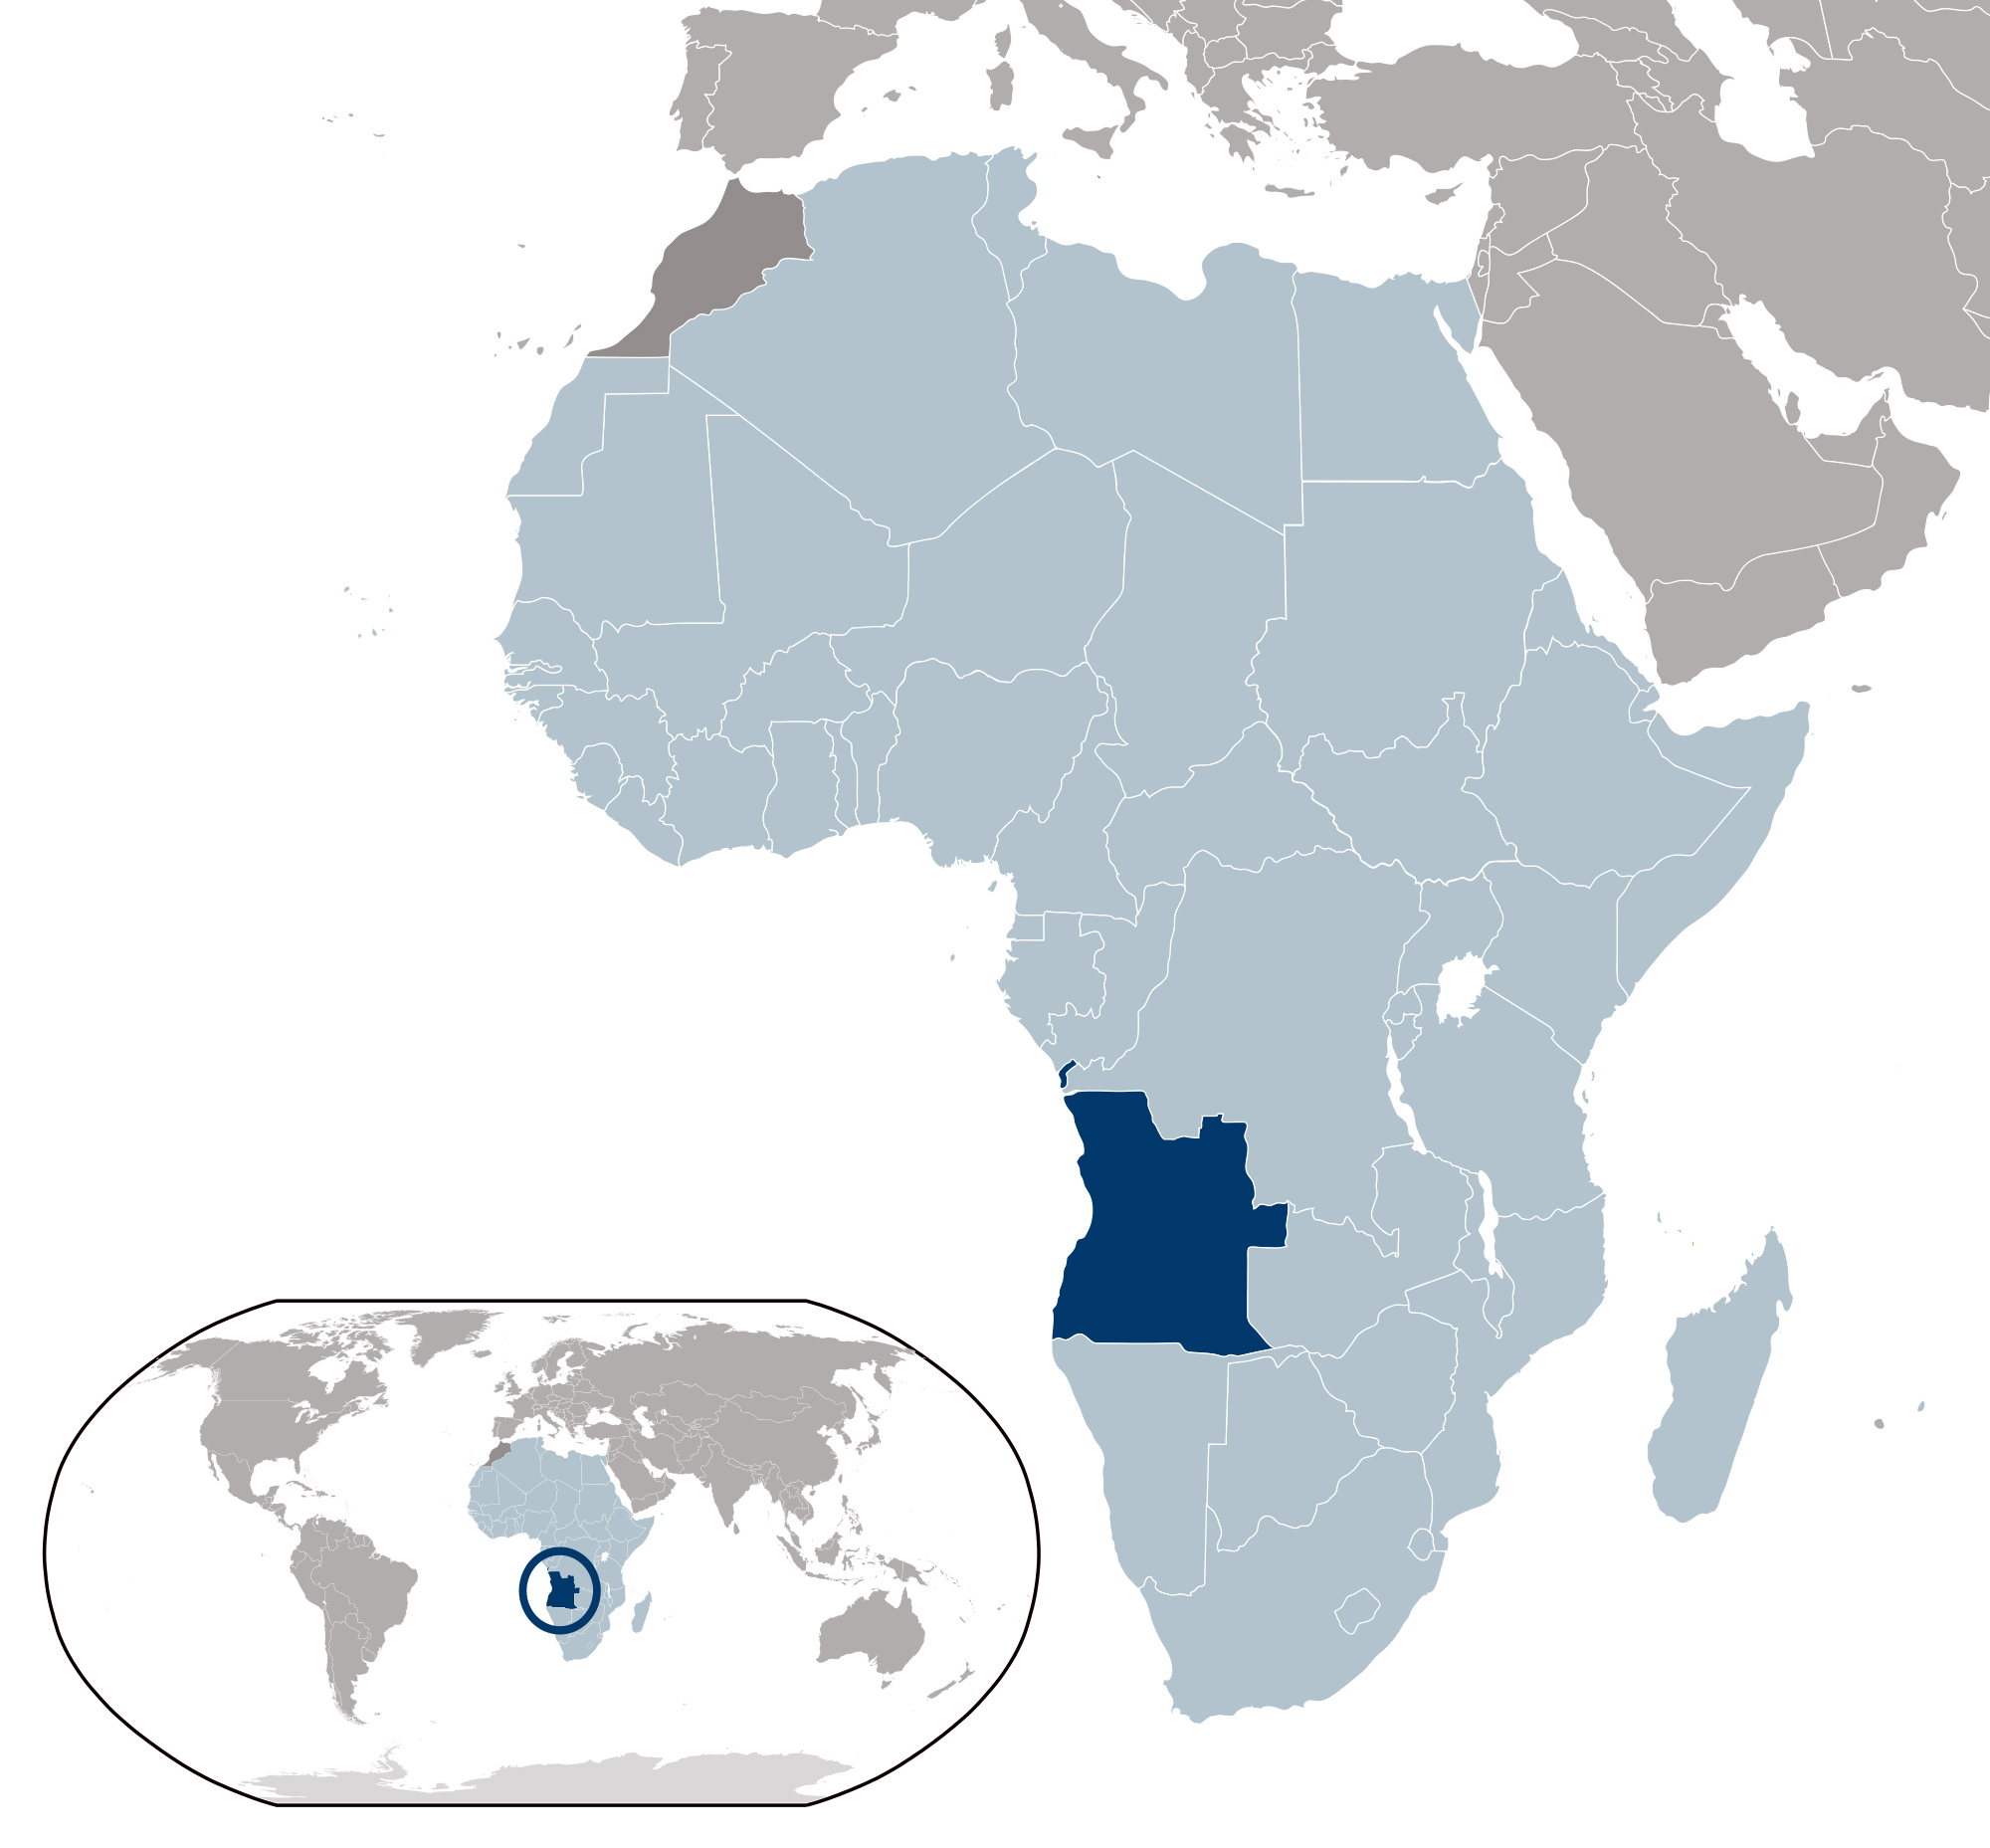 detailed angola location map angola detailed location map, electrical diagram, where is angola located on the world map